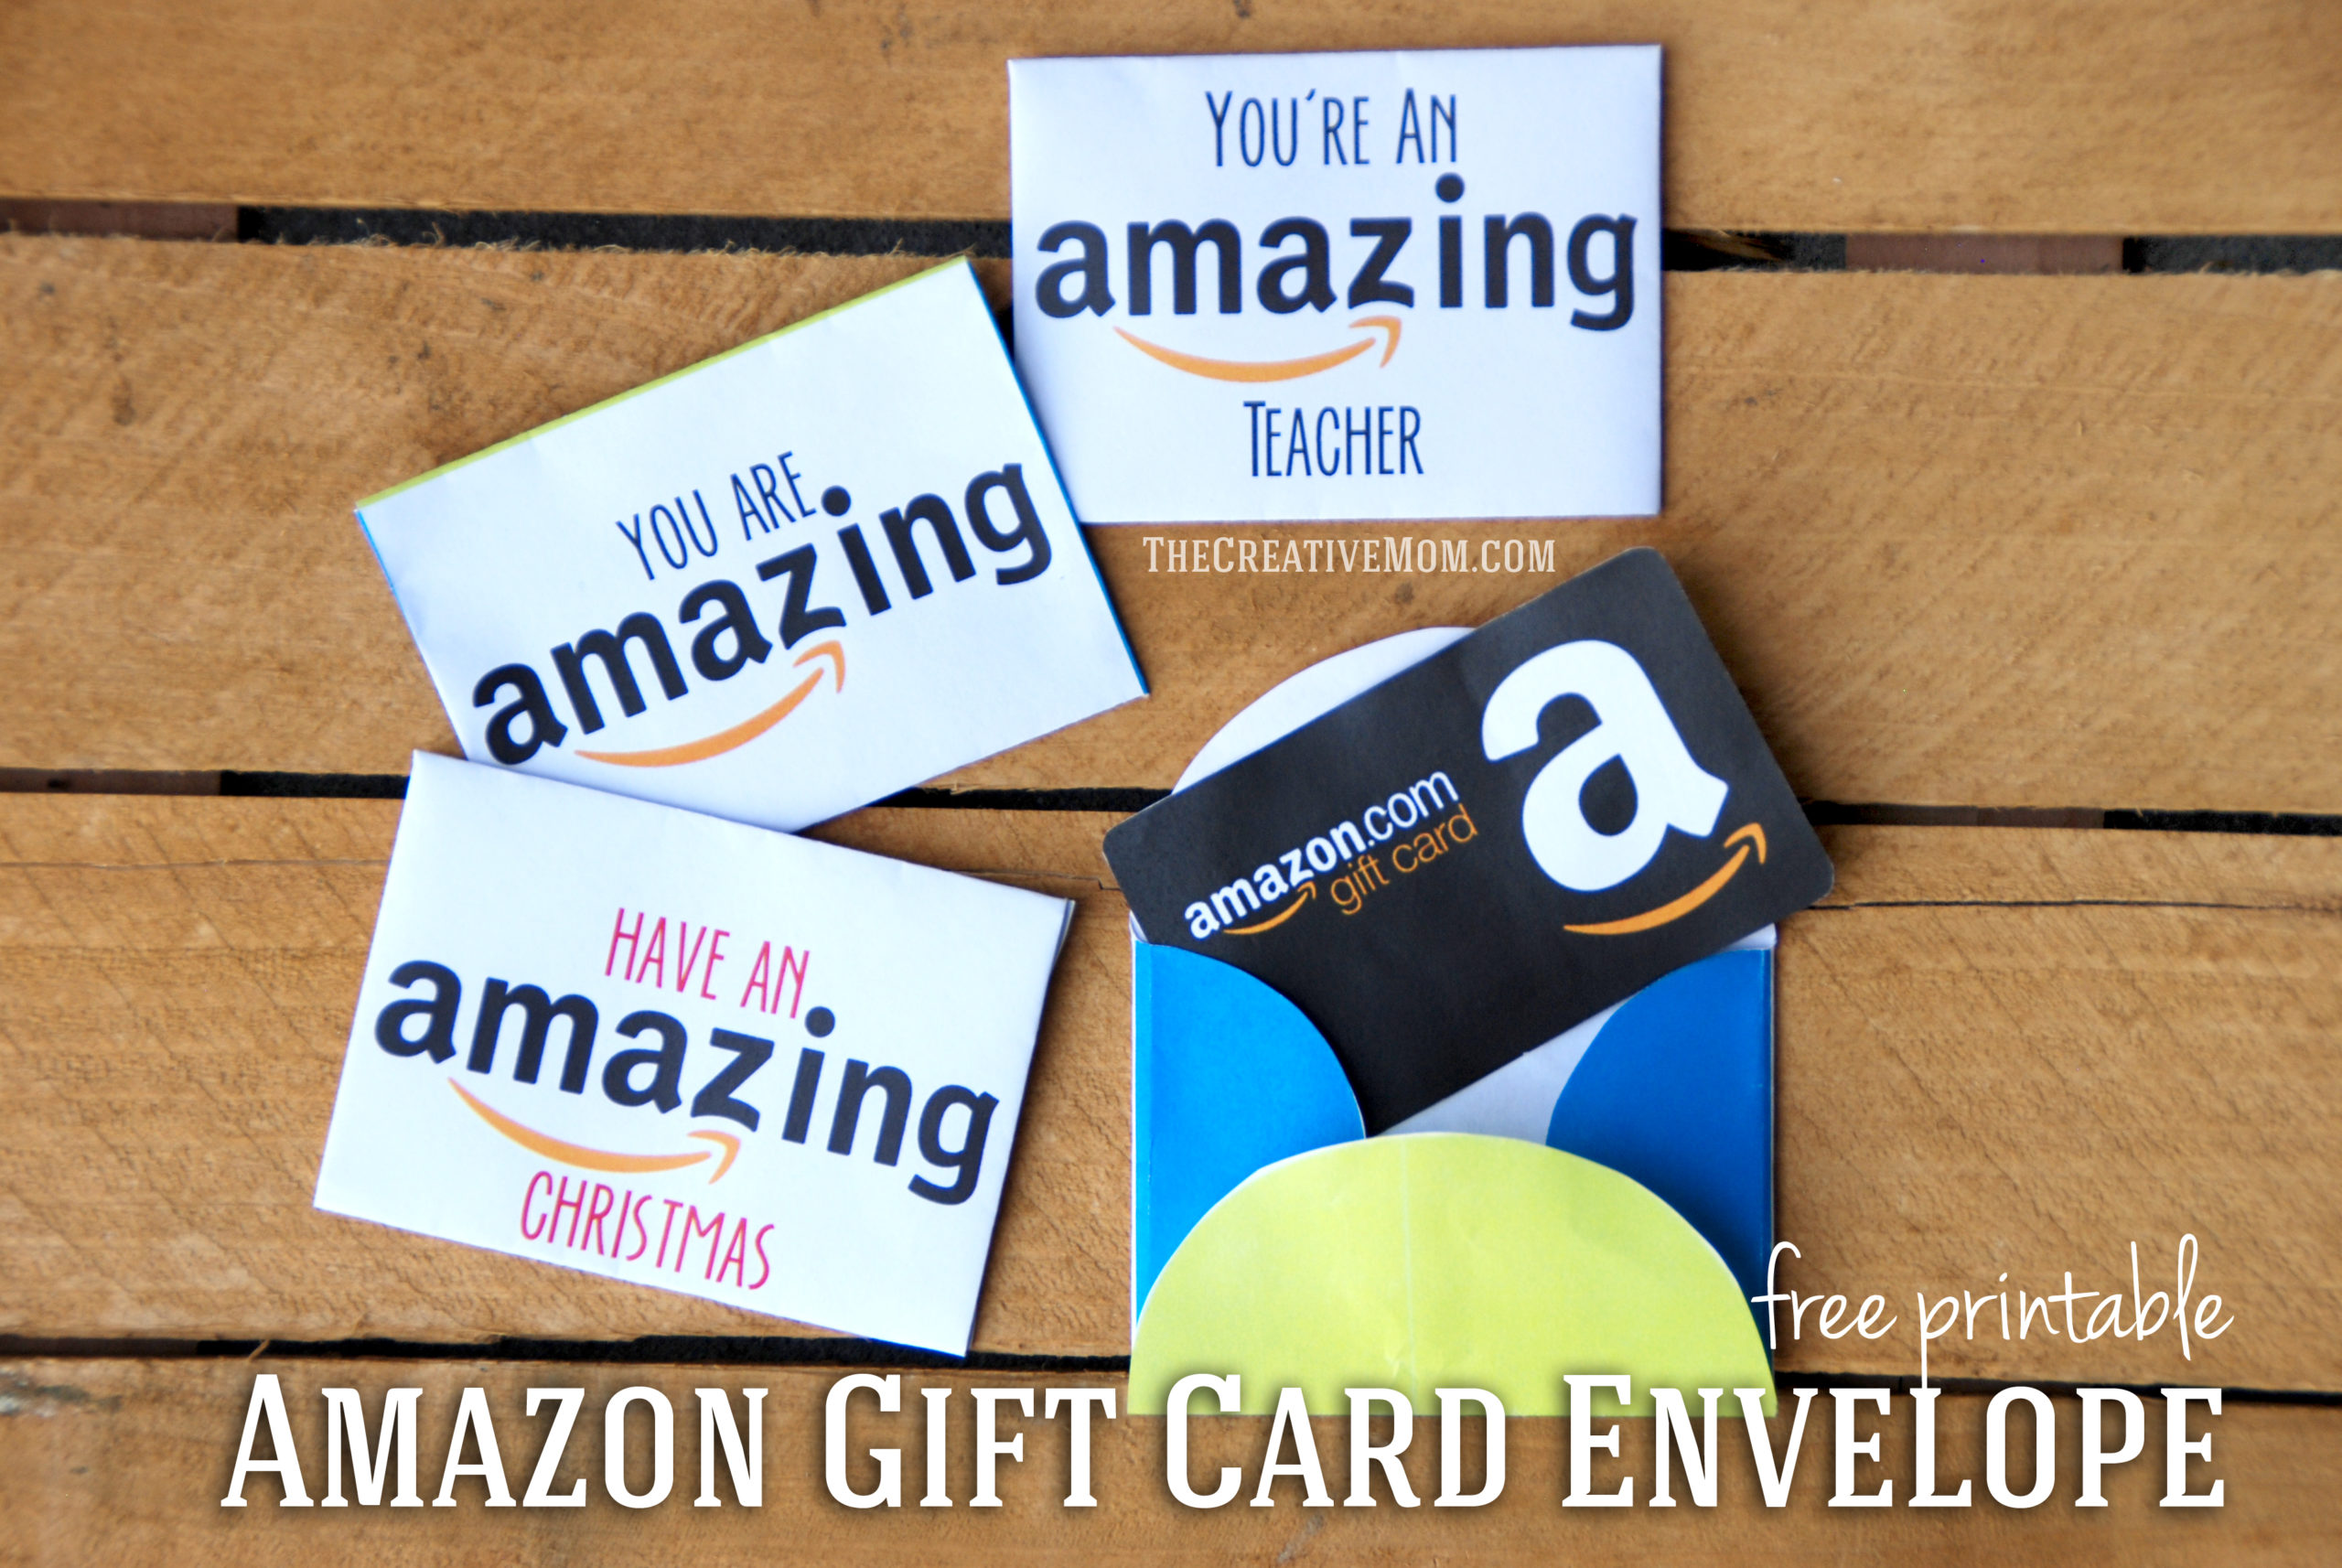 Amazon Gift Card Envelopes (free printable download)